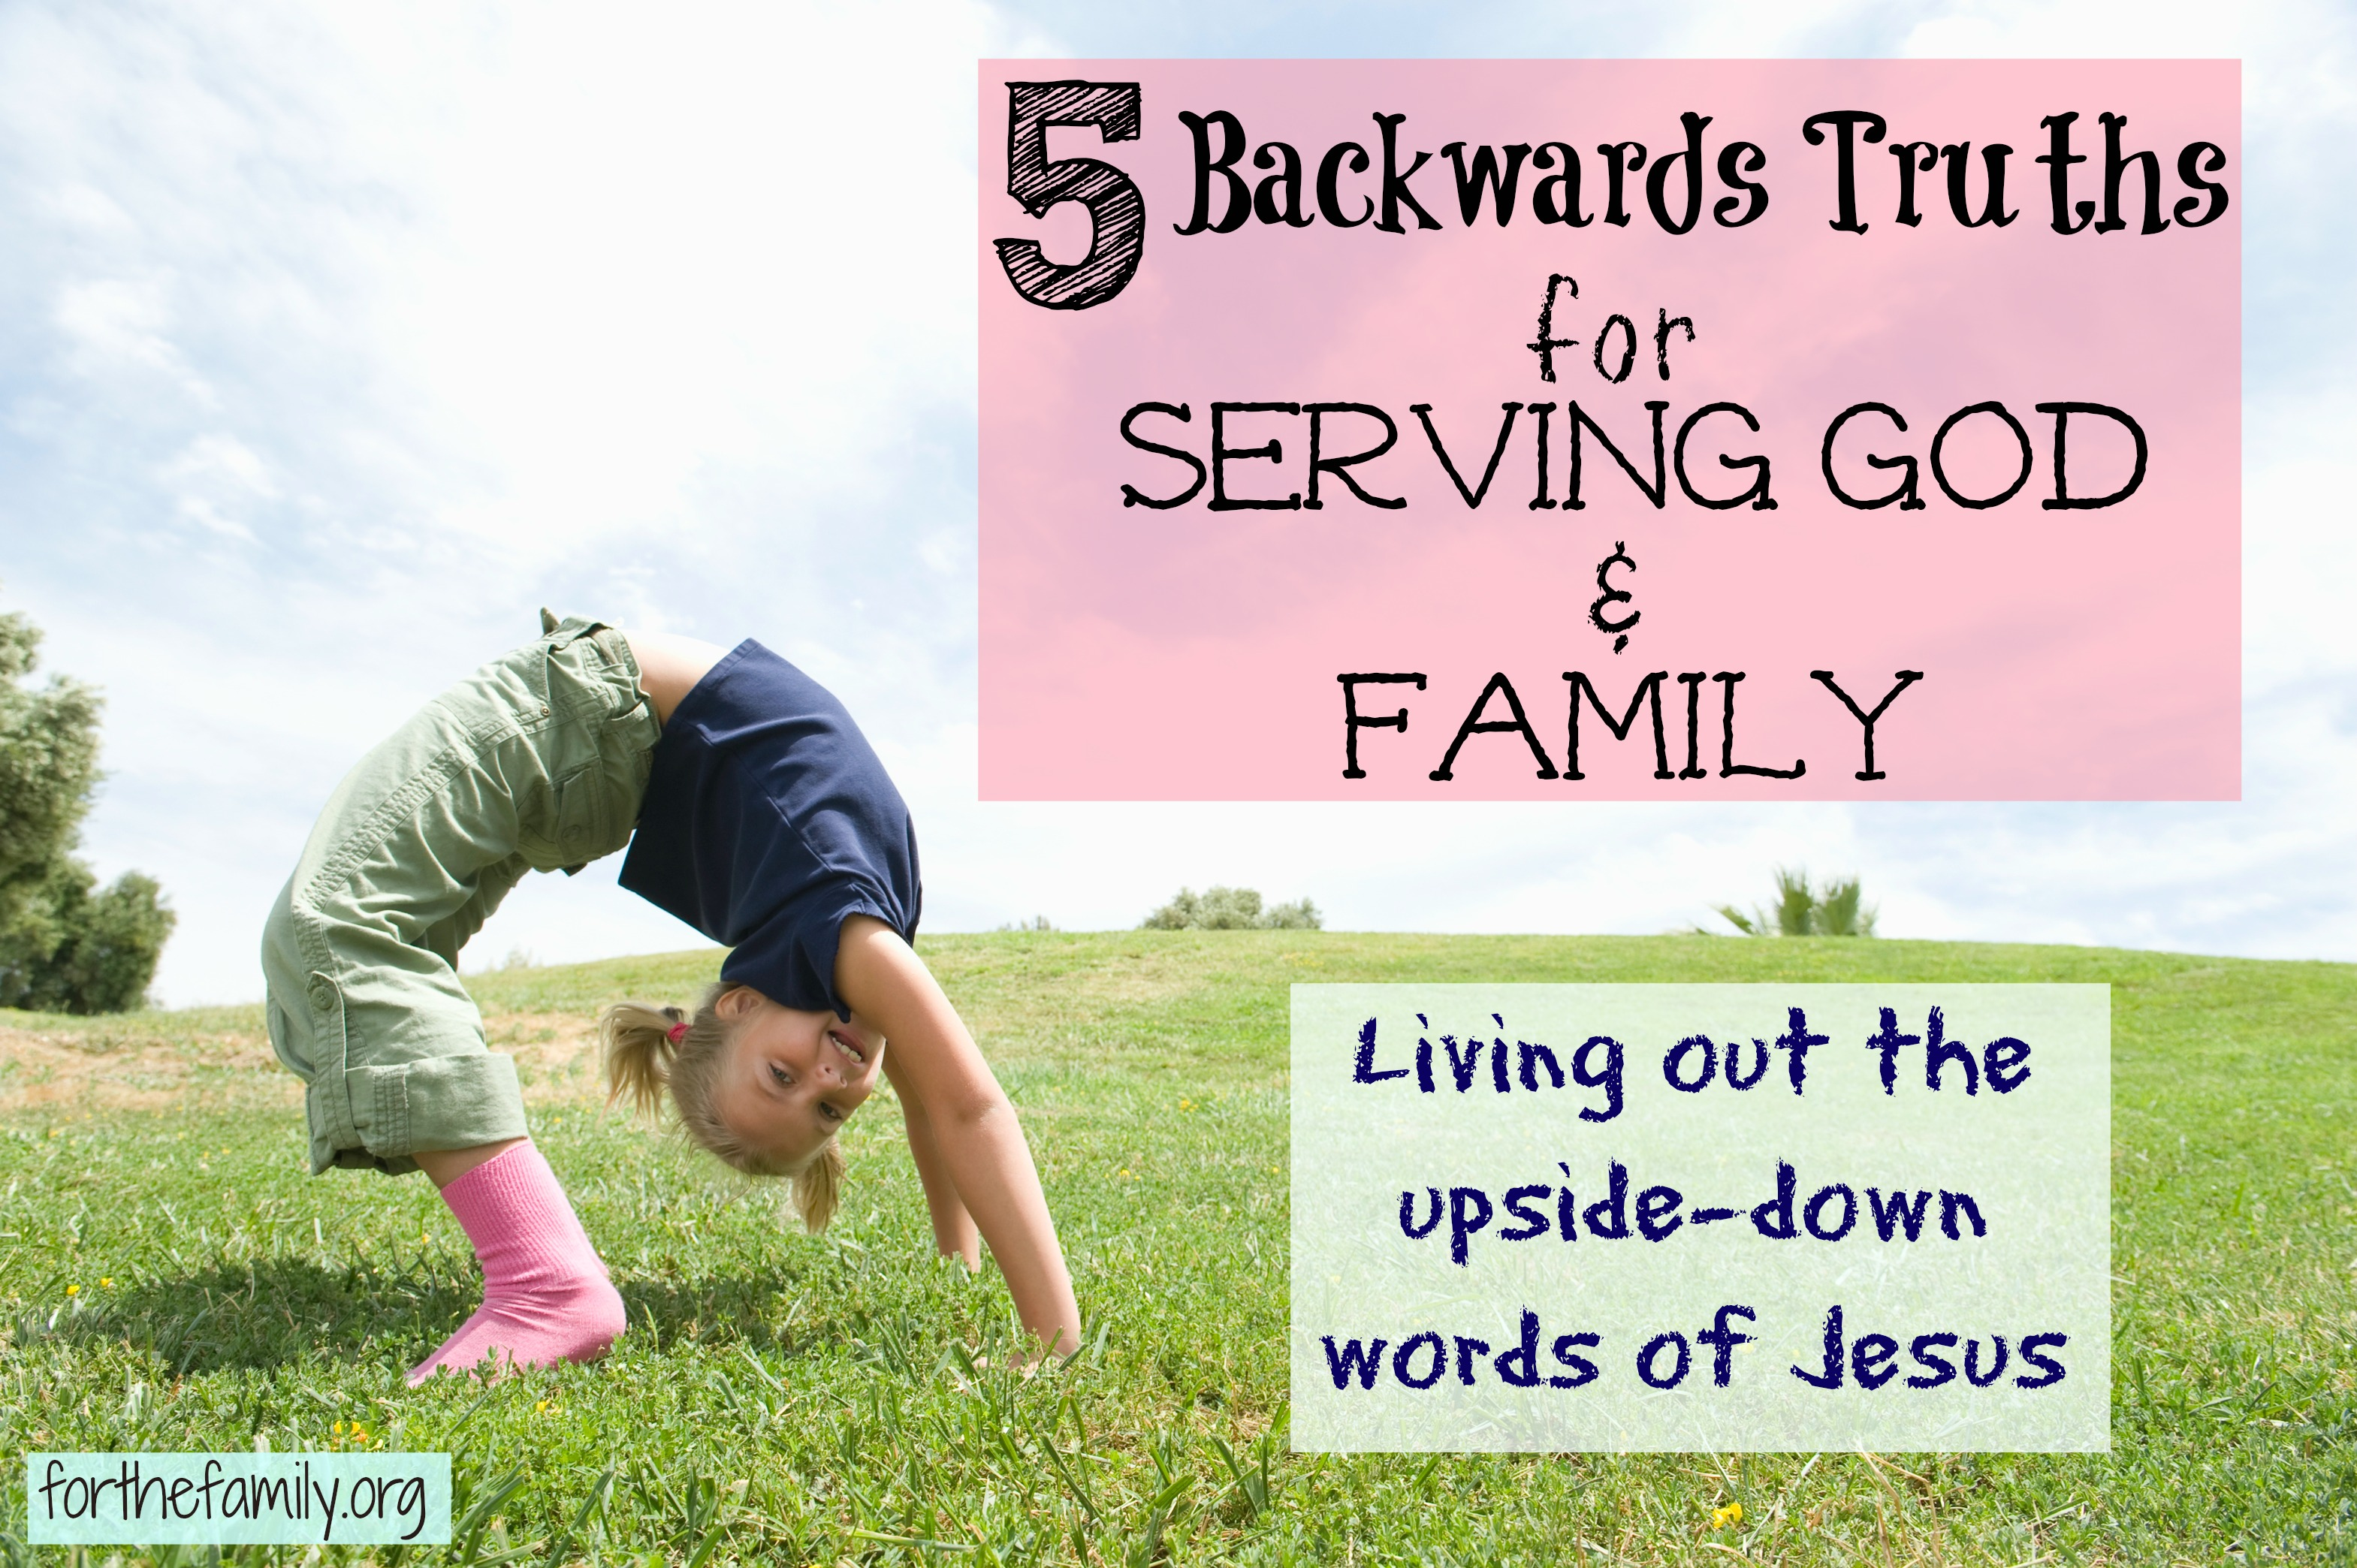 5 Backward Truths for Serving God & Family - for the family